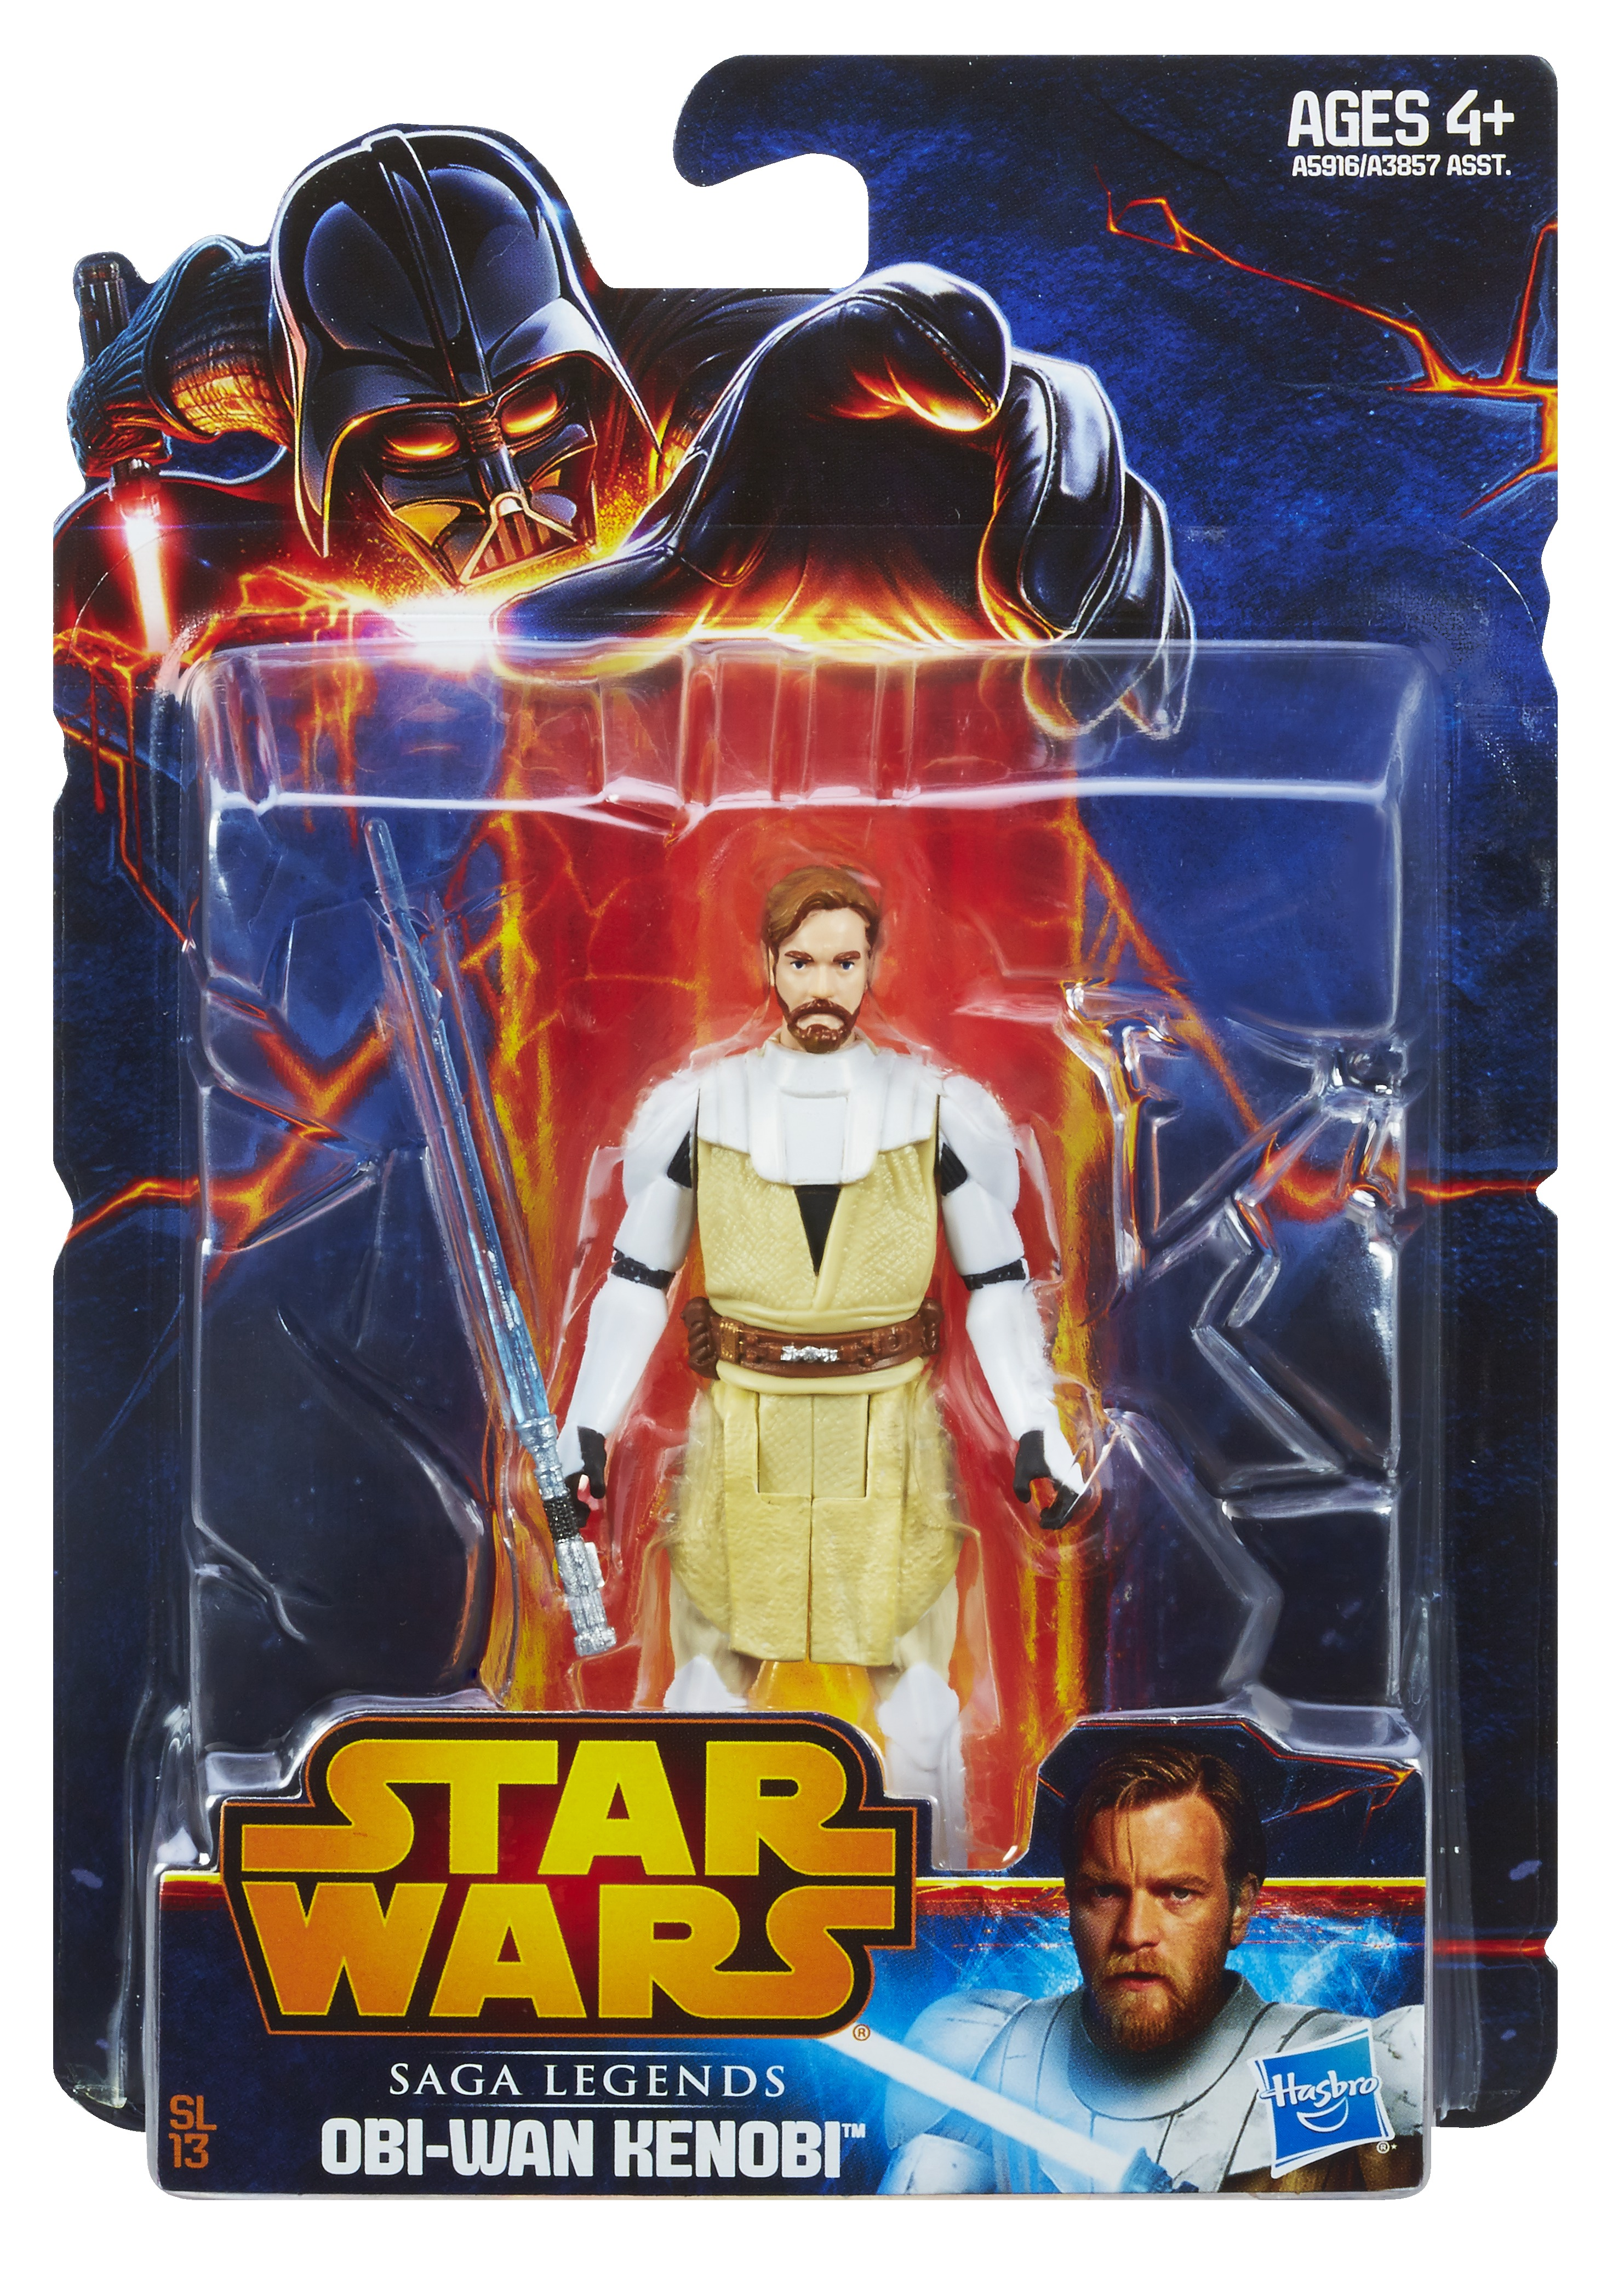 Star Wars Rebels Galaxy Saga Legends 3.75inch CW Obi-Wan In Pack A5916 (1)